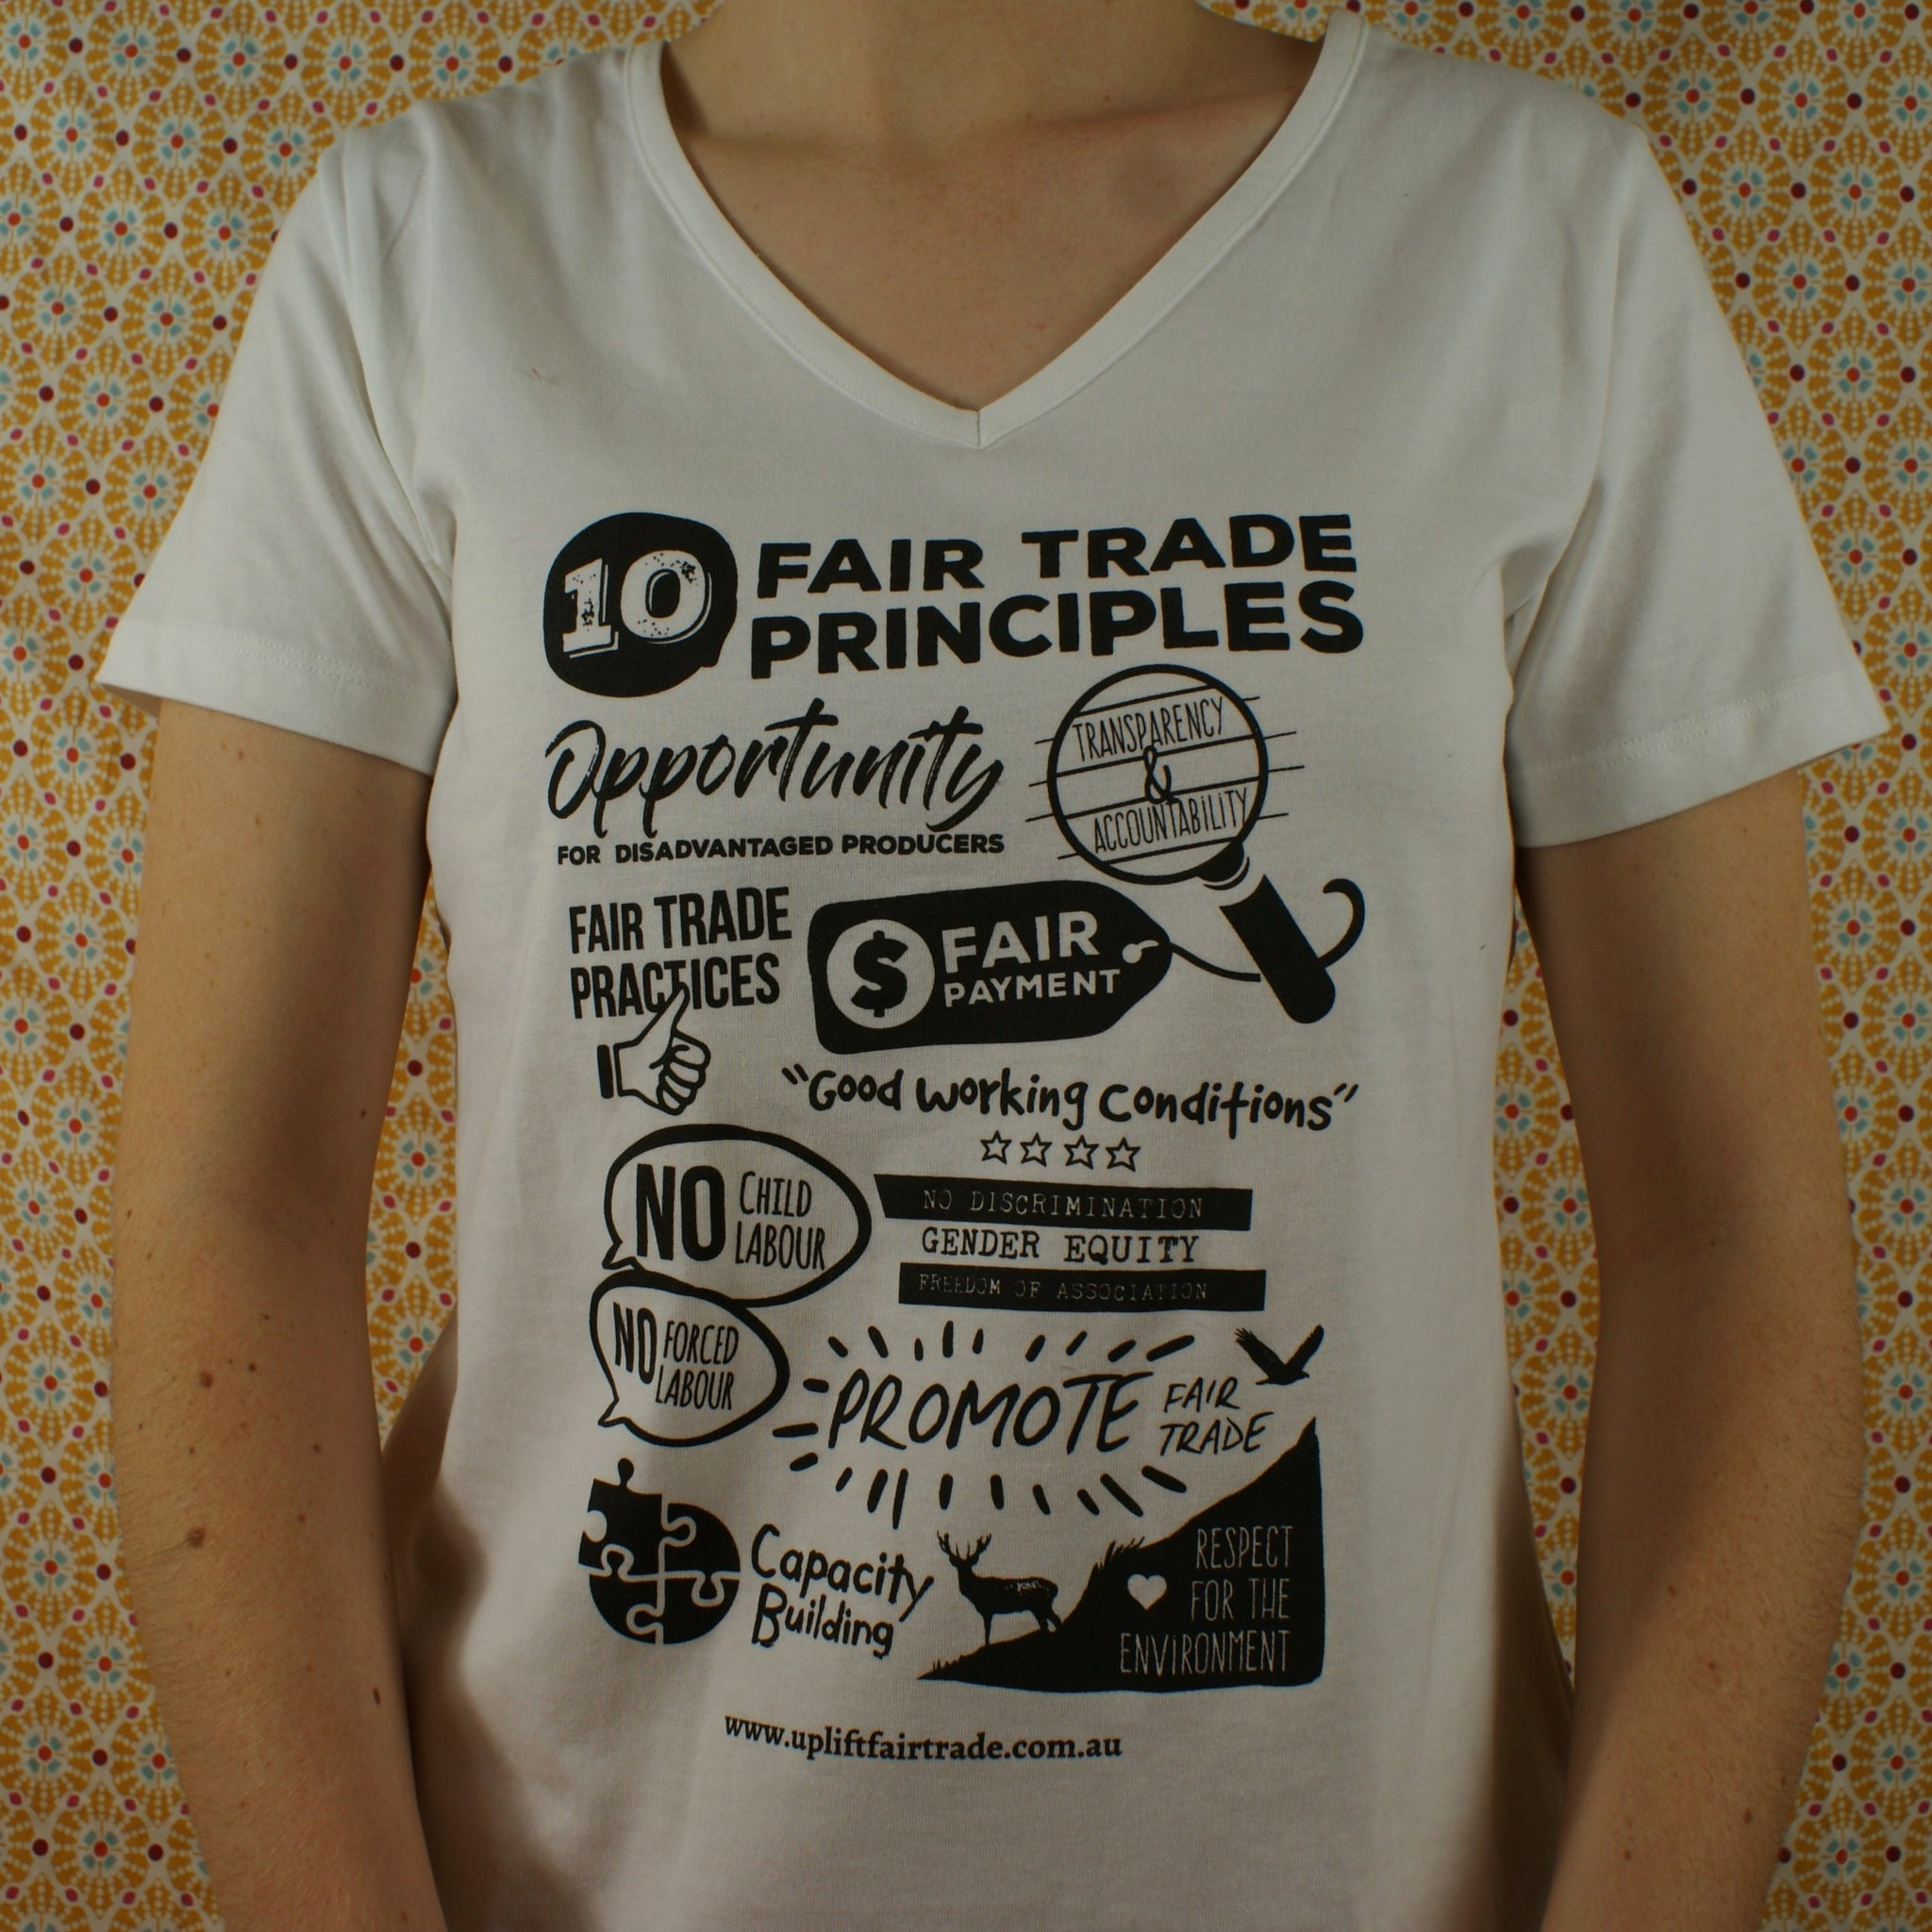 Fairtrade 10 Principles of Fair Trade T-shirt